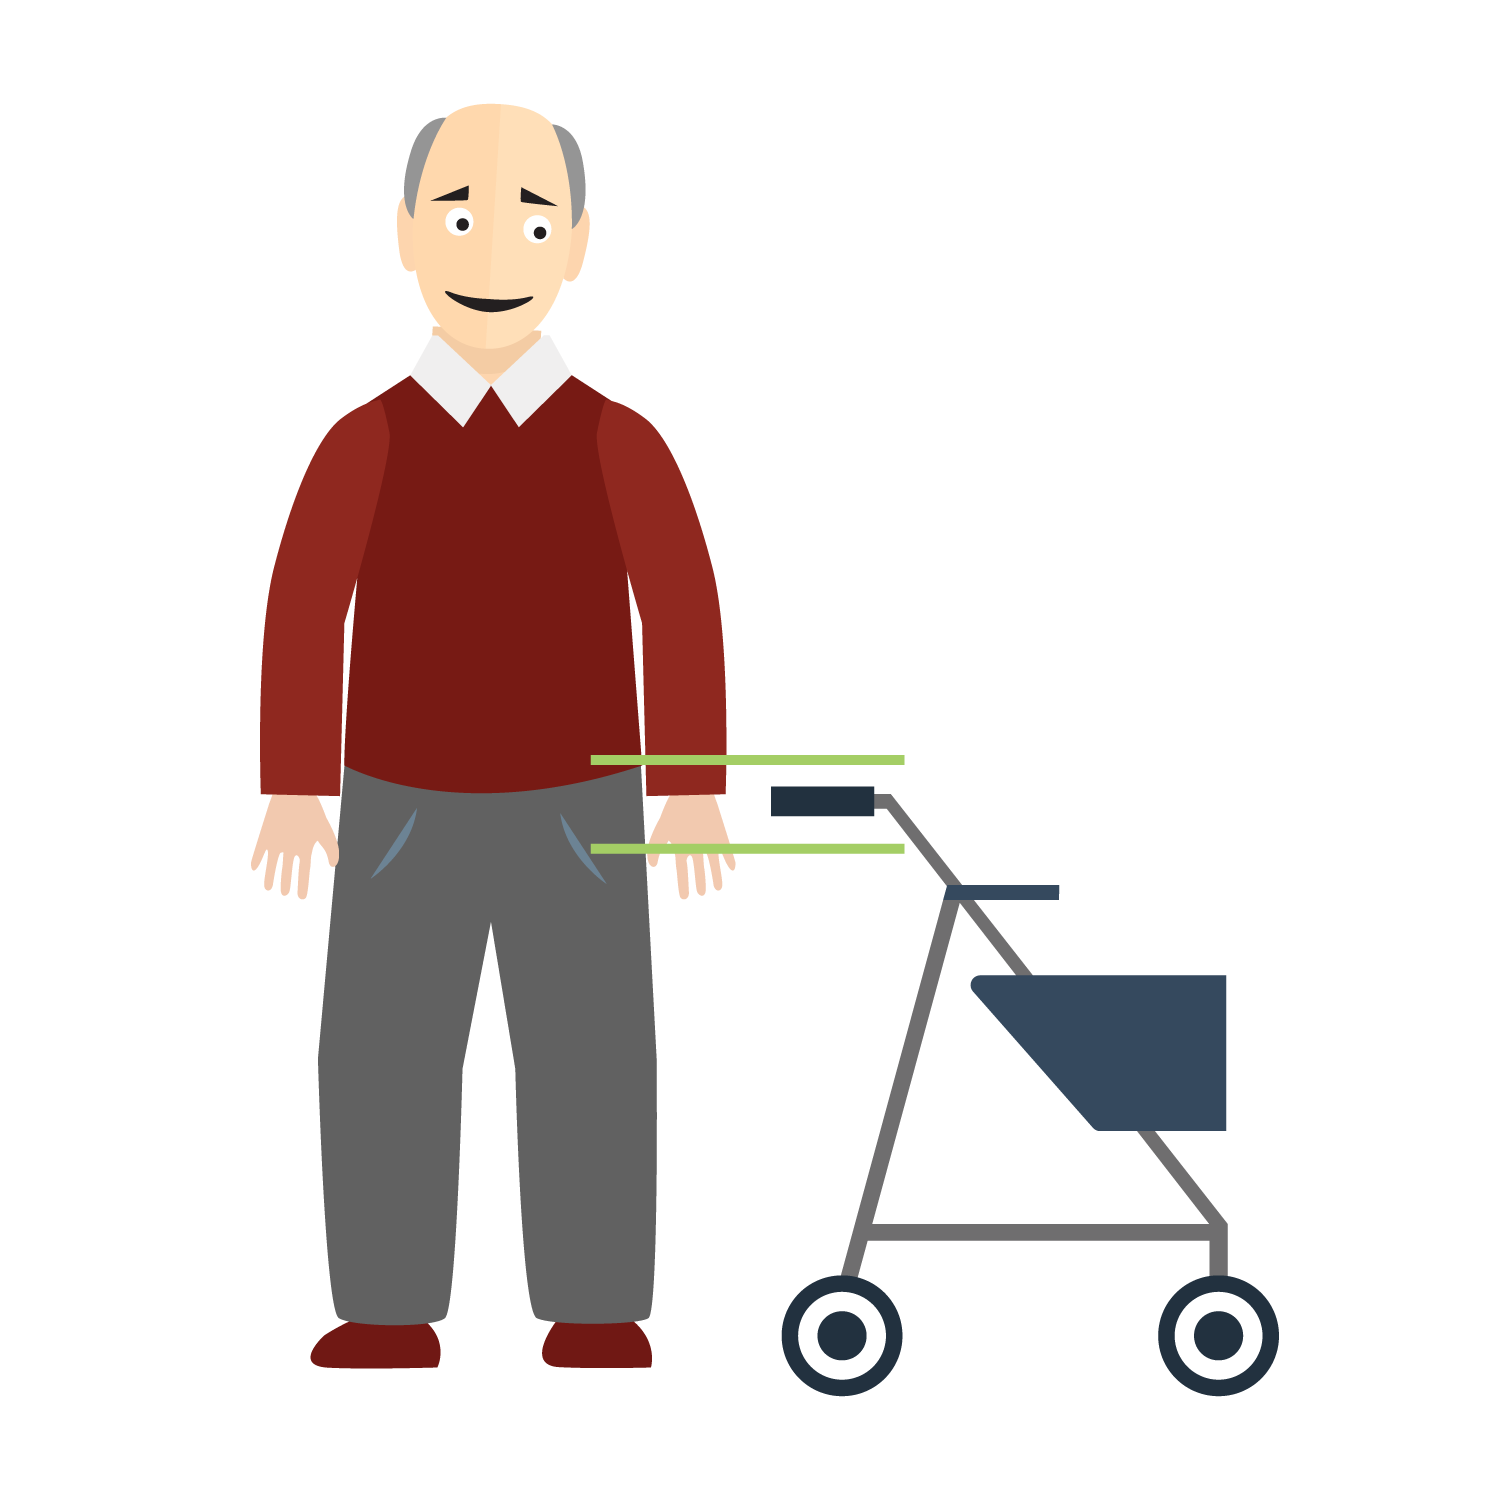 livetsomsenior-rollator-illustration-2